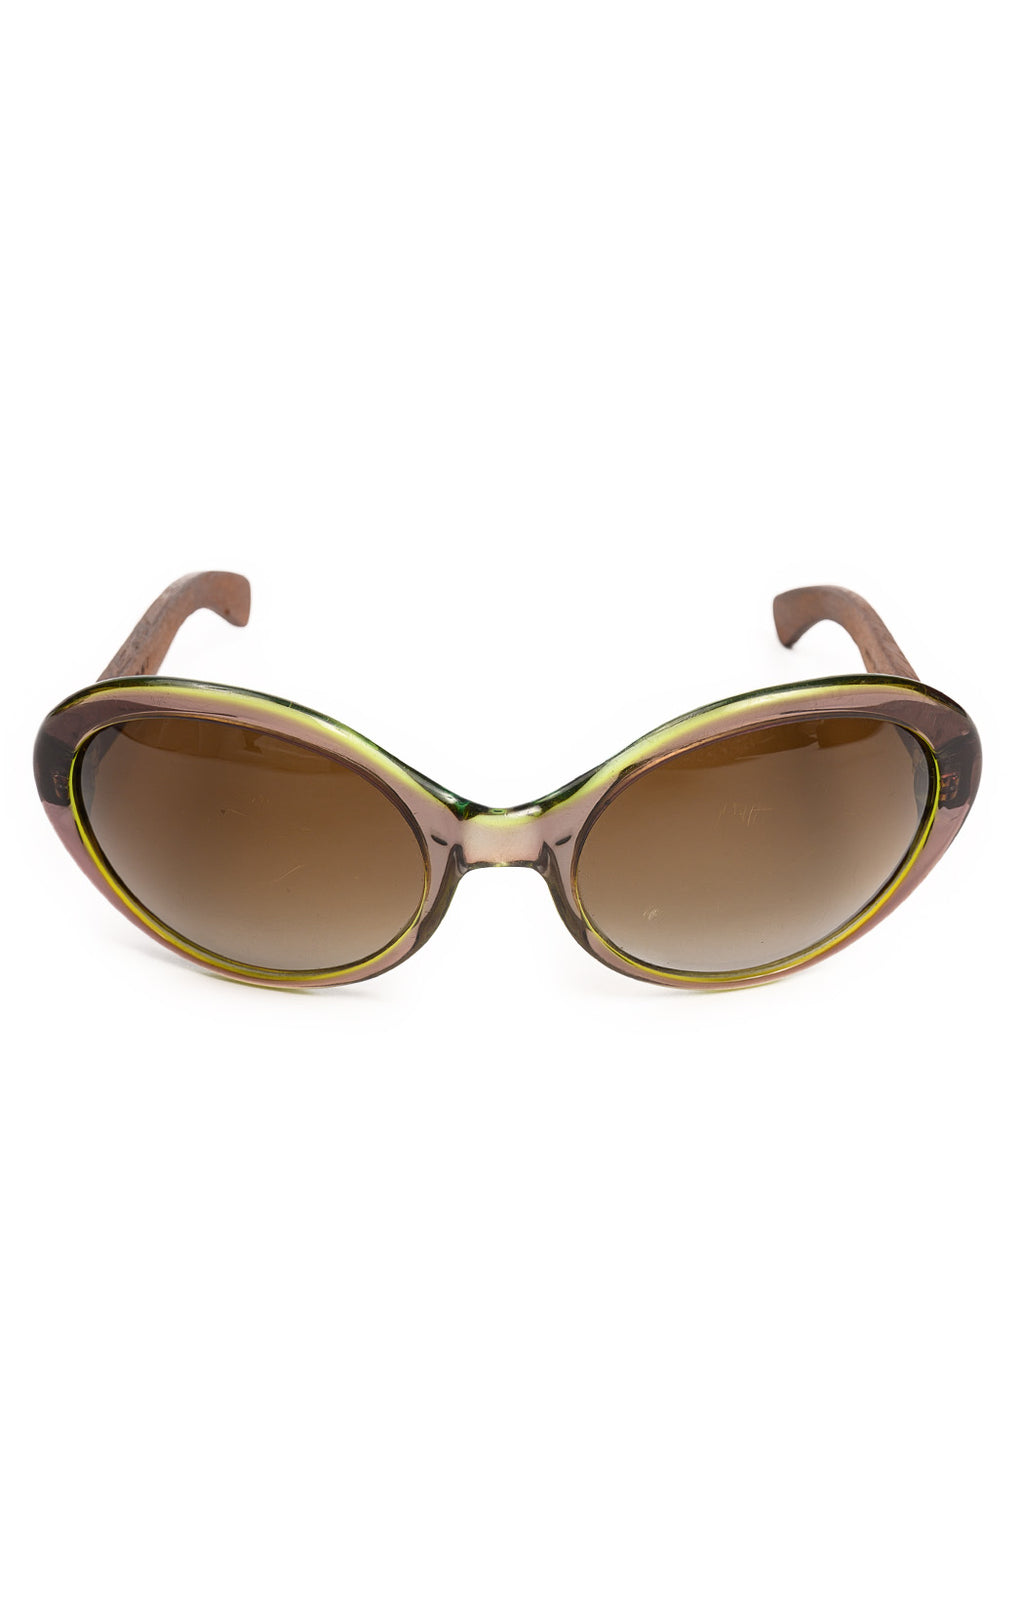 "Front view of MARNI Sunglasses Size: 6"" W x 2"" H"